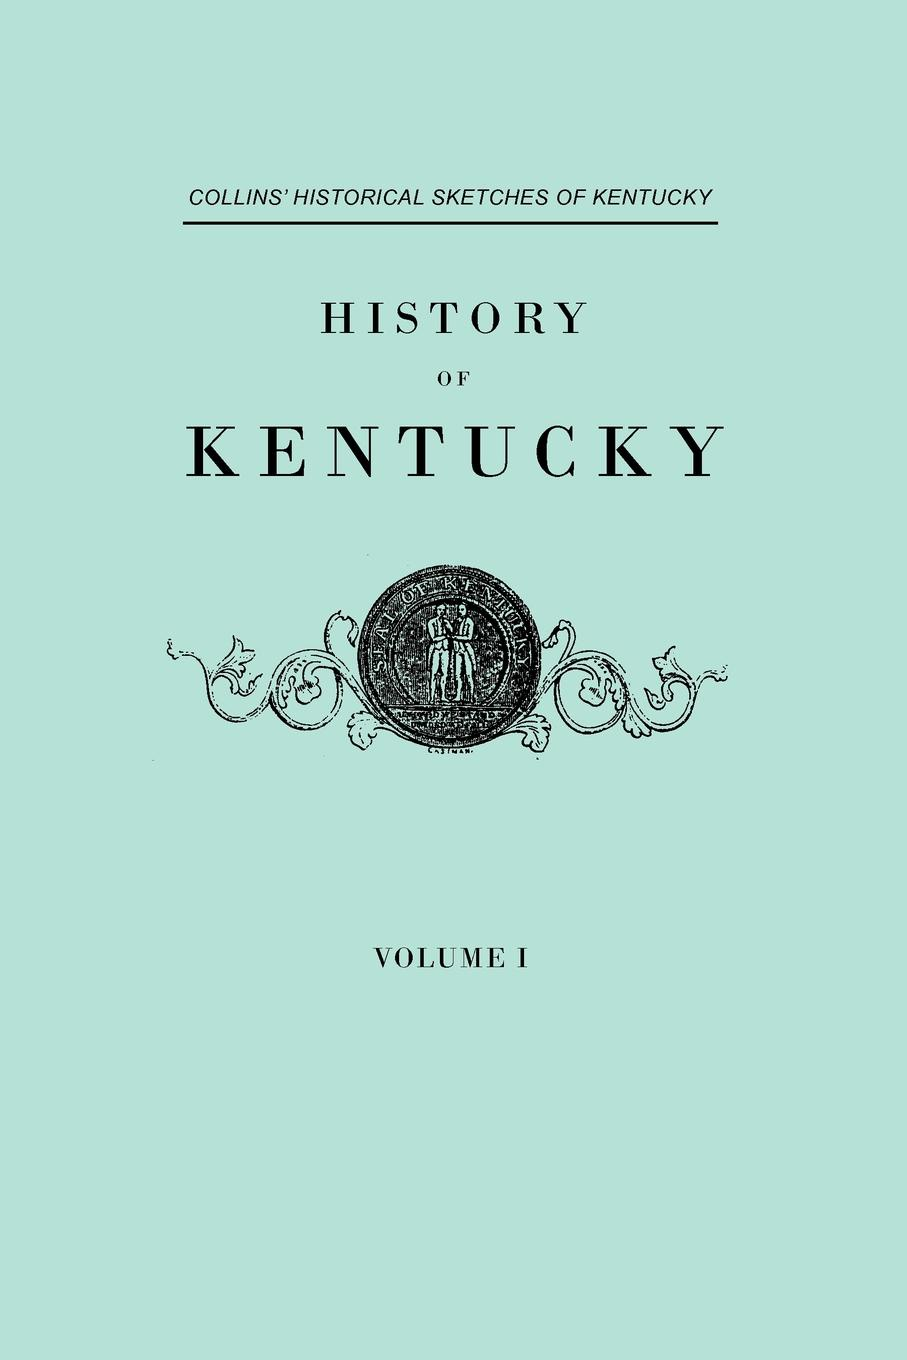 Lewis Collins, Richard H. Collins History of Kentucky. Collins' Historical Sketches of Kentucky. In Two Volumes. Volume I